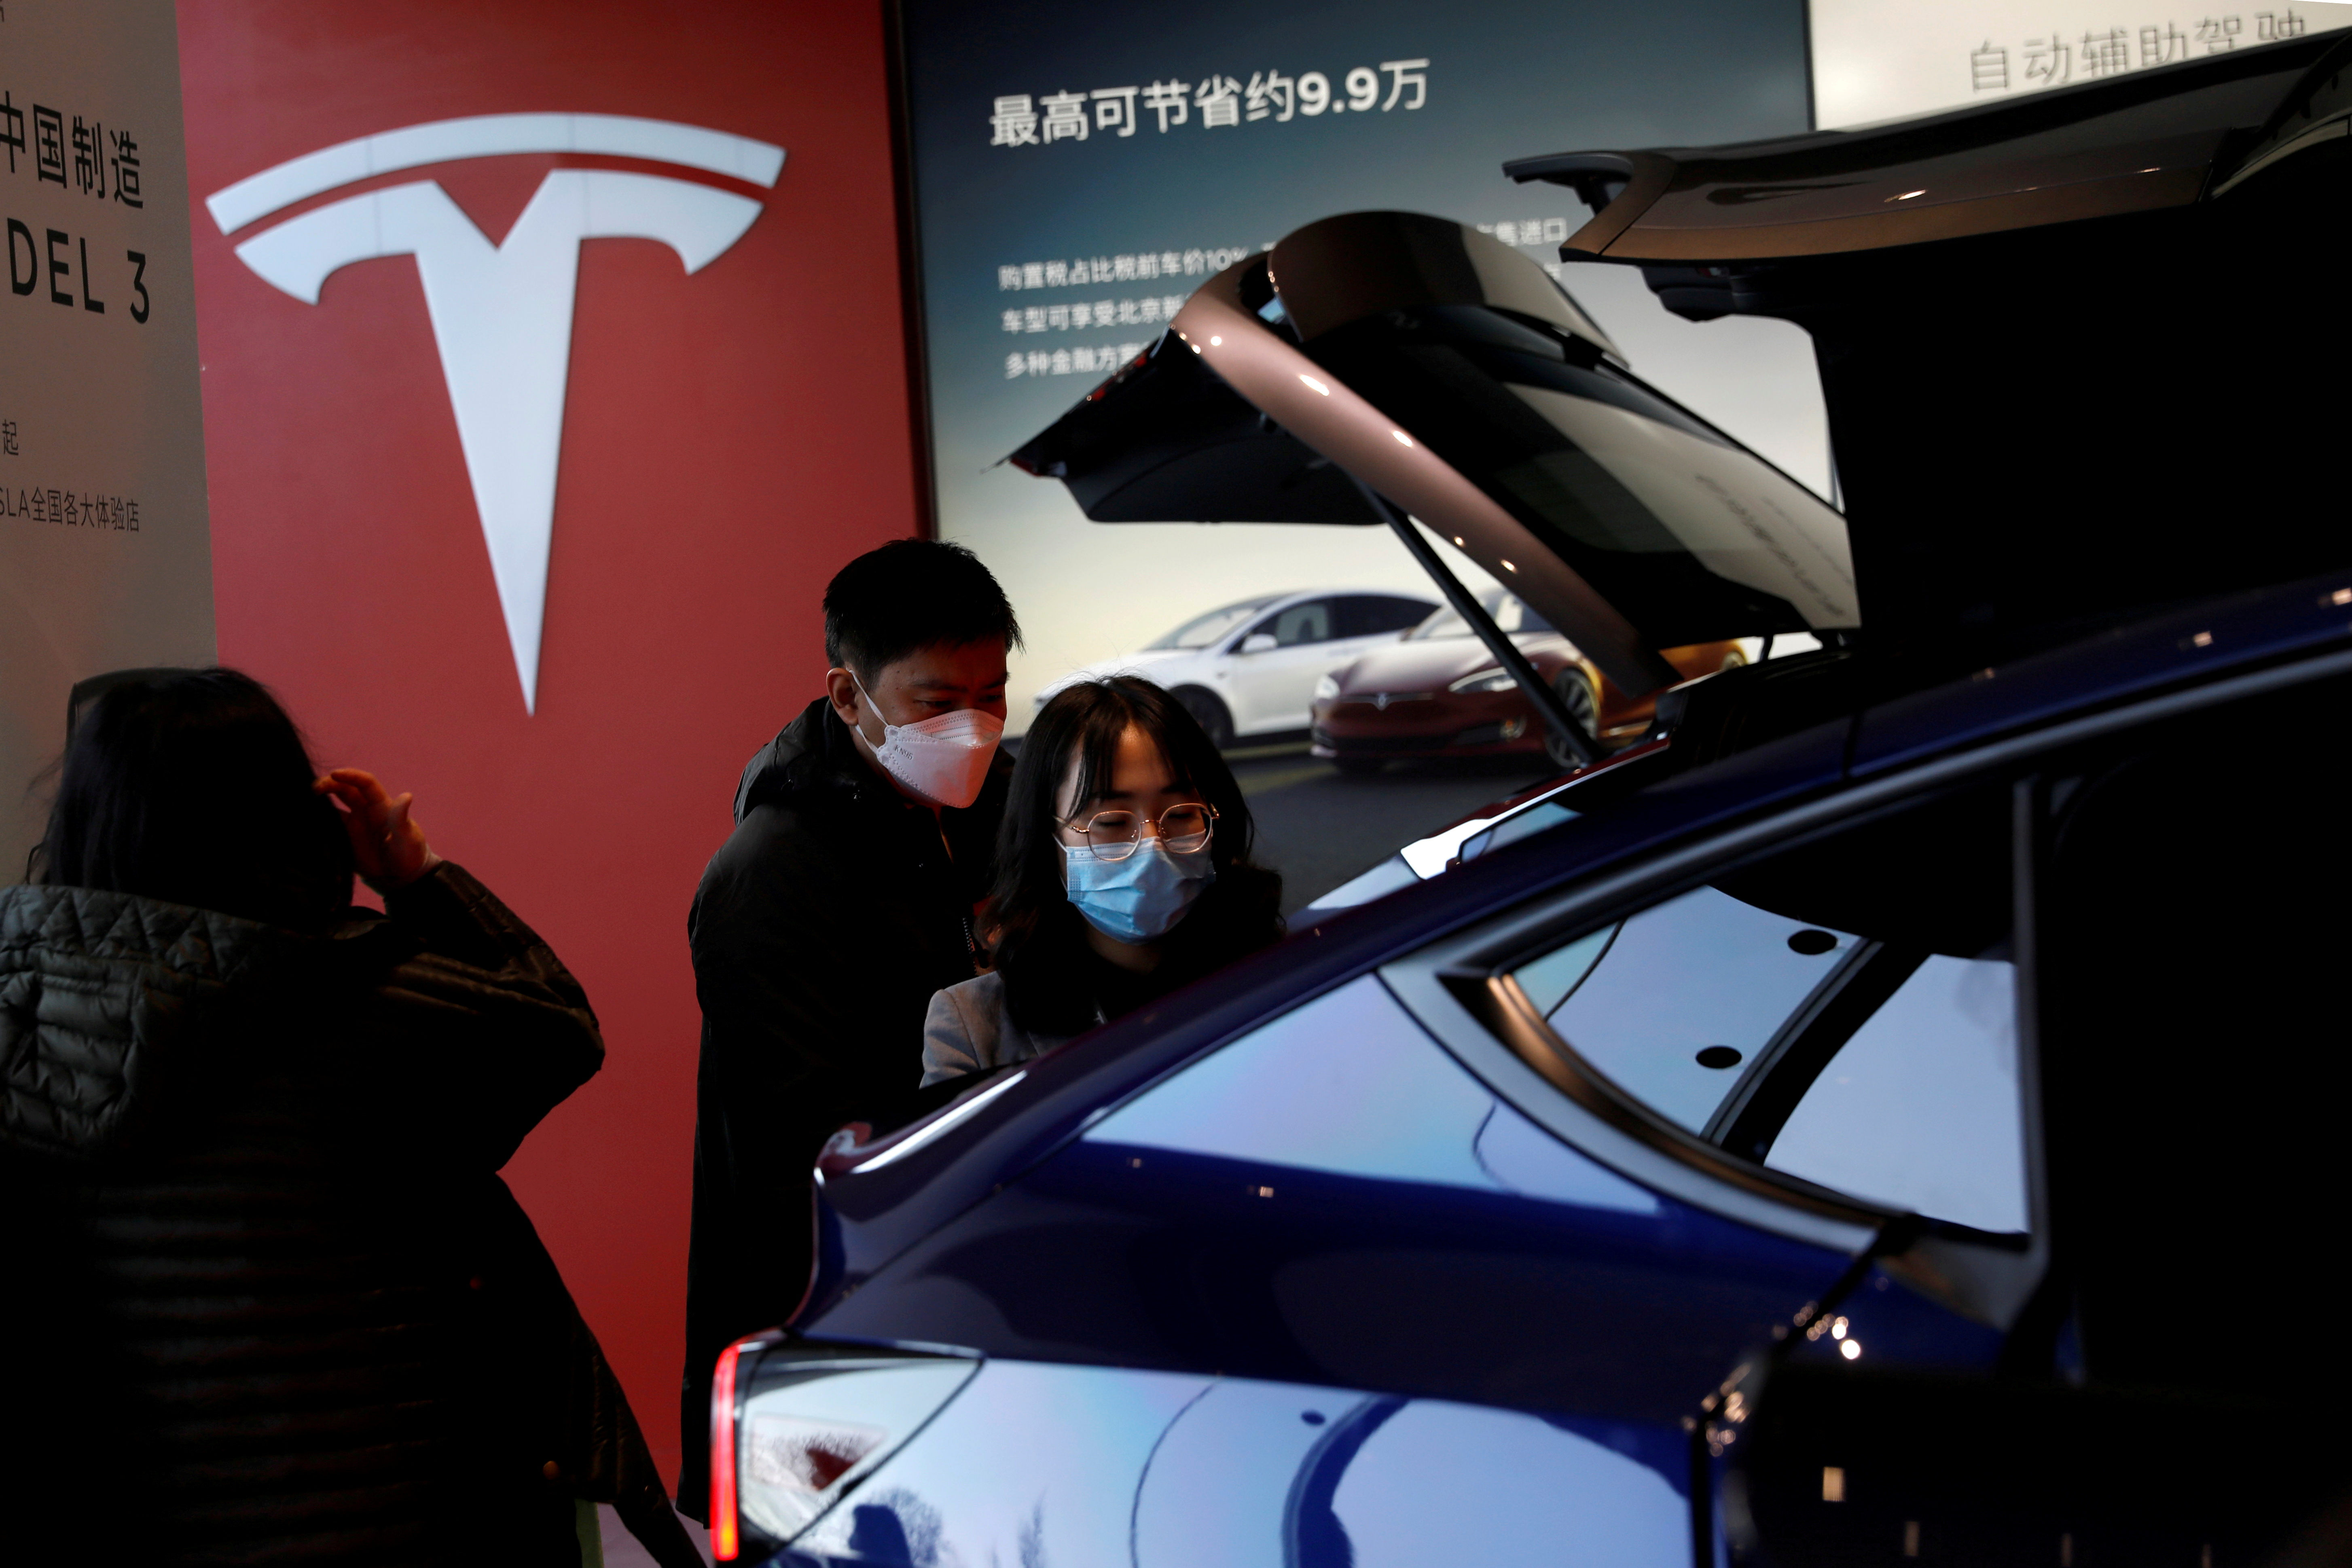 Visitors wearing face masks check a China-made Tesla Model Y sport utility vehicle (SUV) at the electric vehicle maker's showroom in Beijing, China January 5, 2021. REUTERS/Tingshu Wang